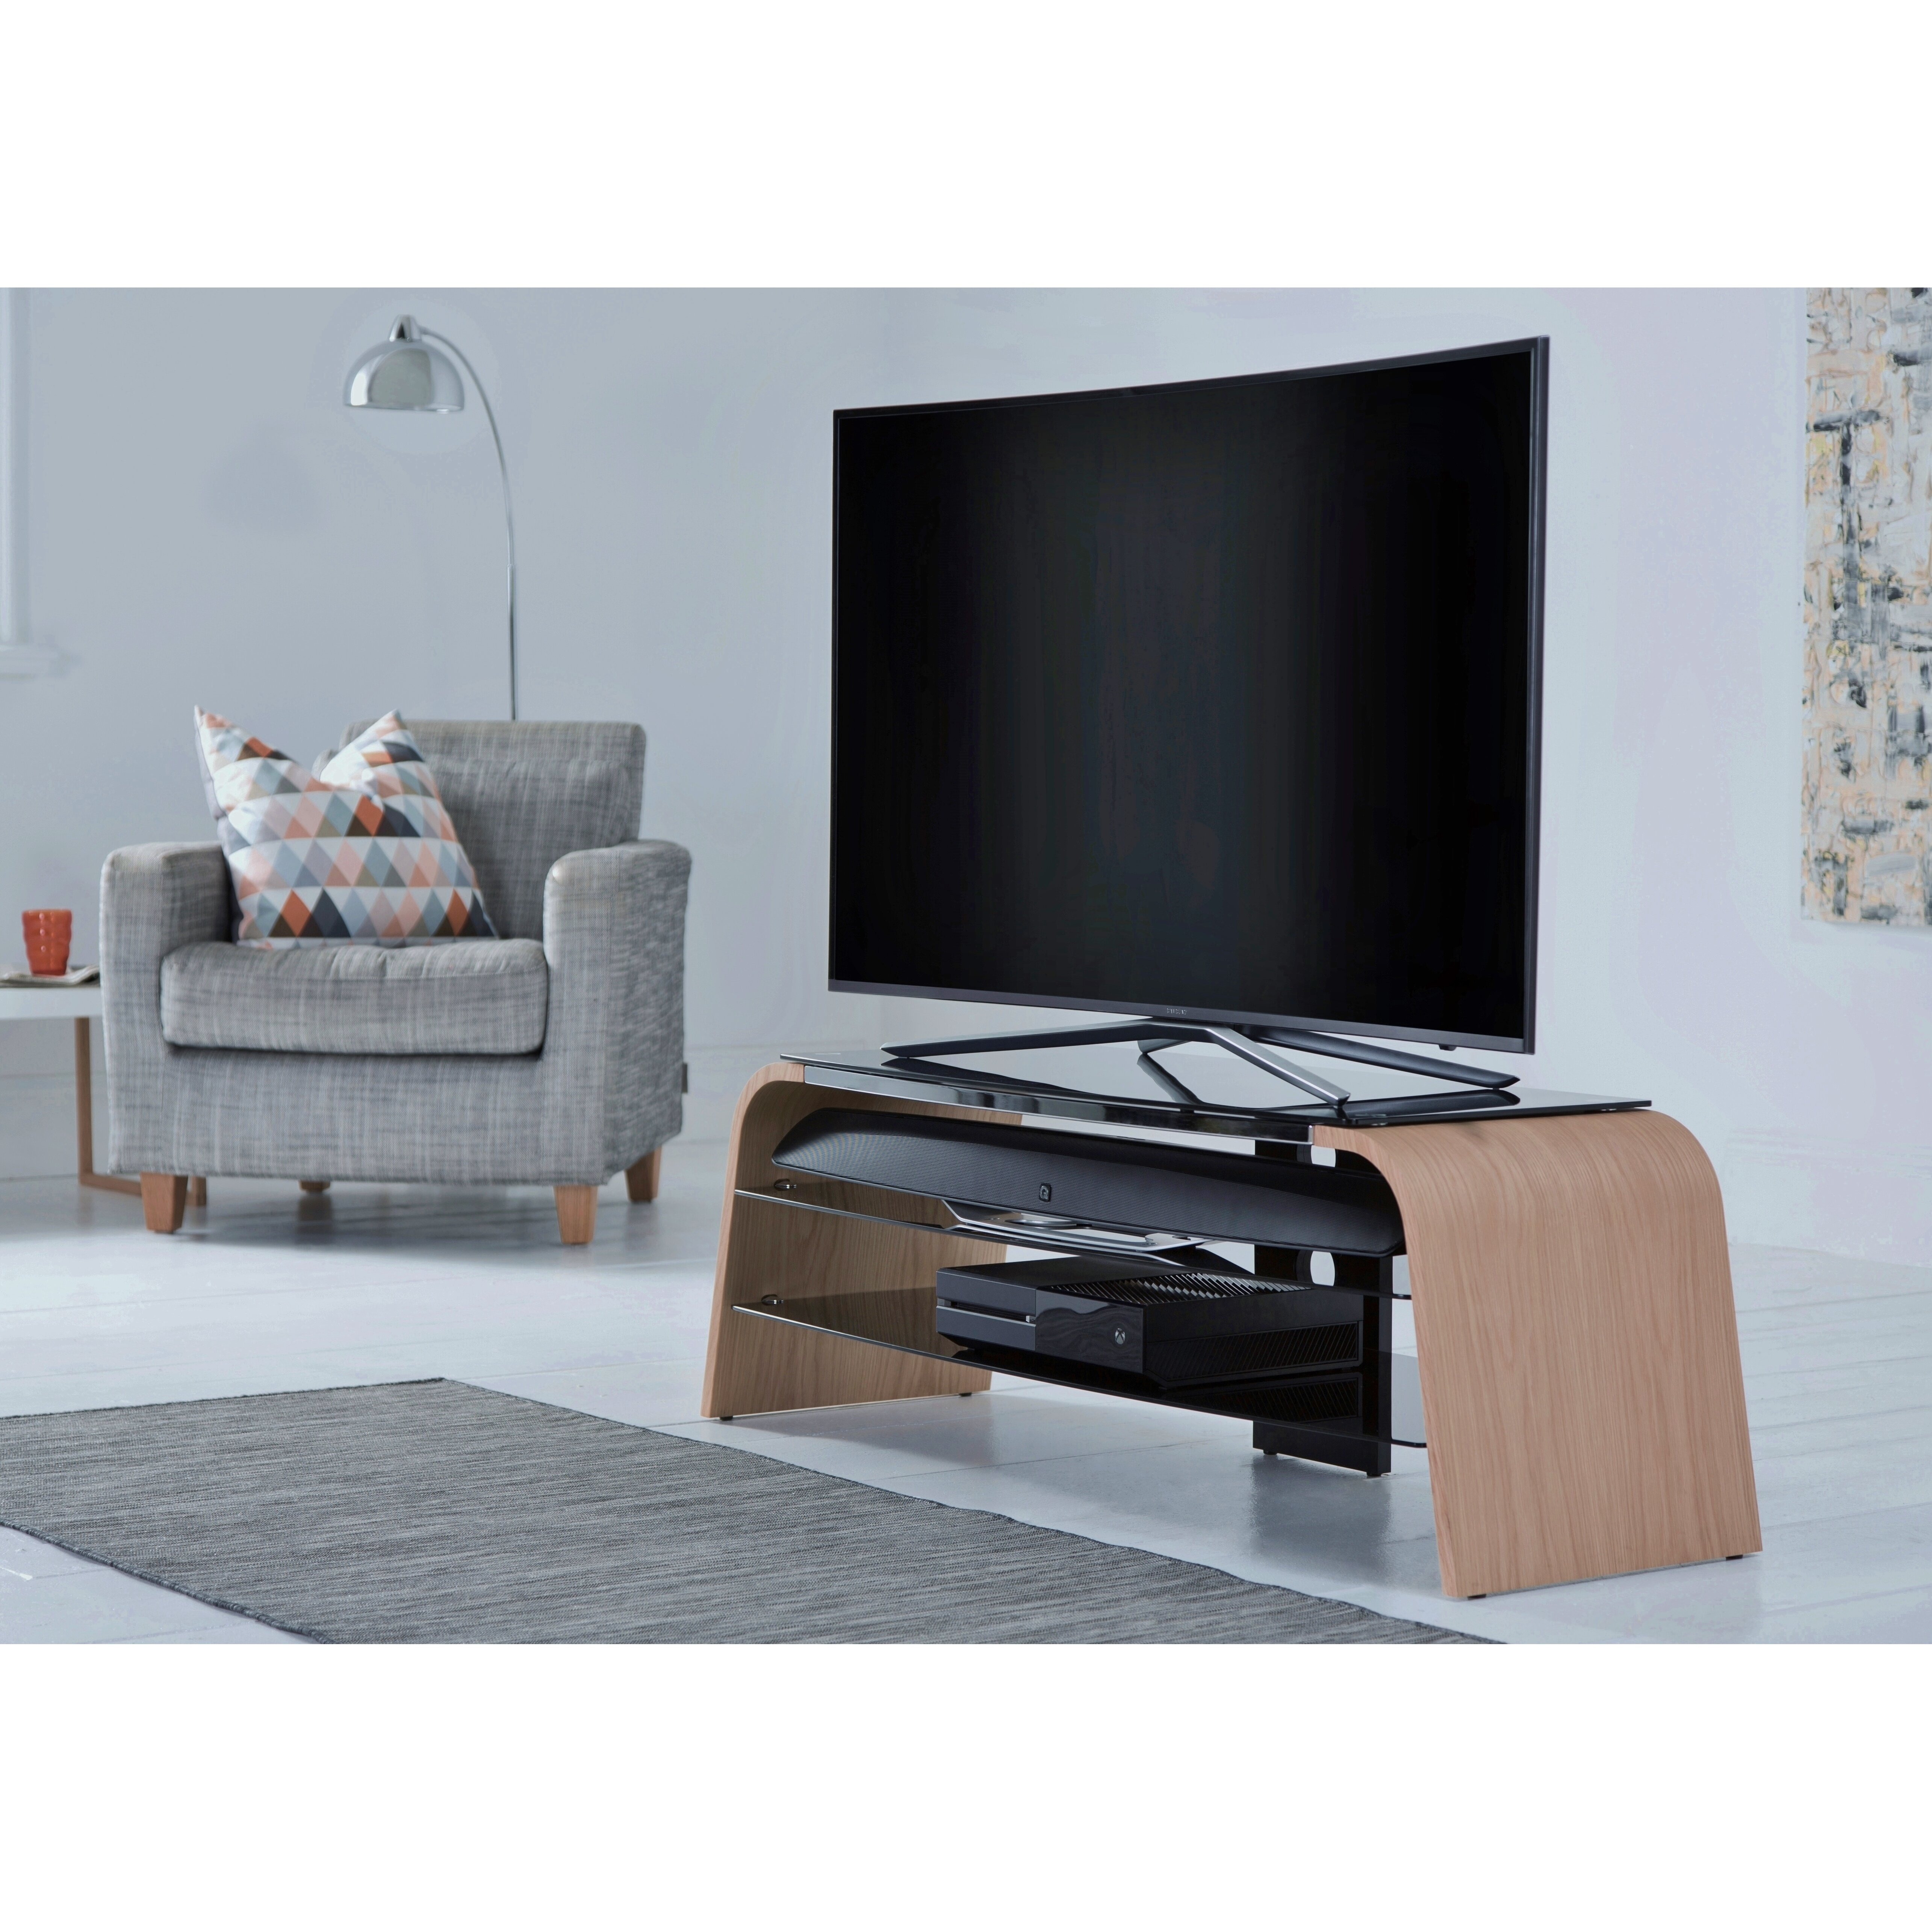 Alphason Design First Spectrum 1400 TV Stand For TVs Up To